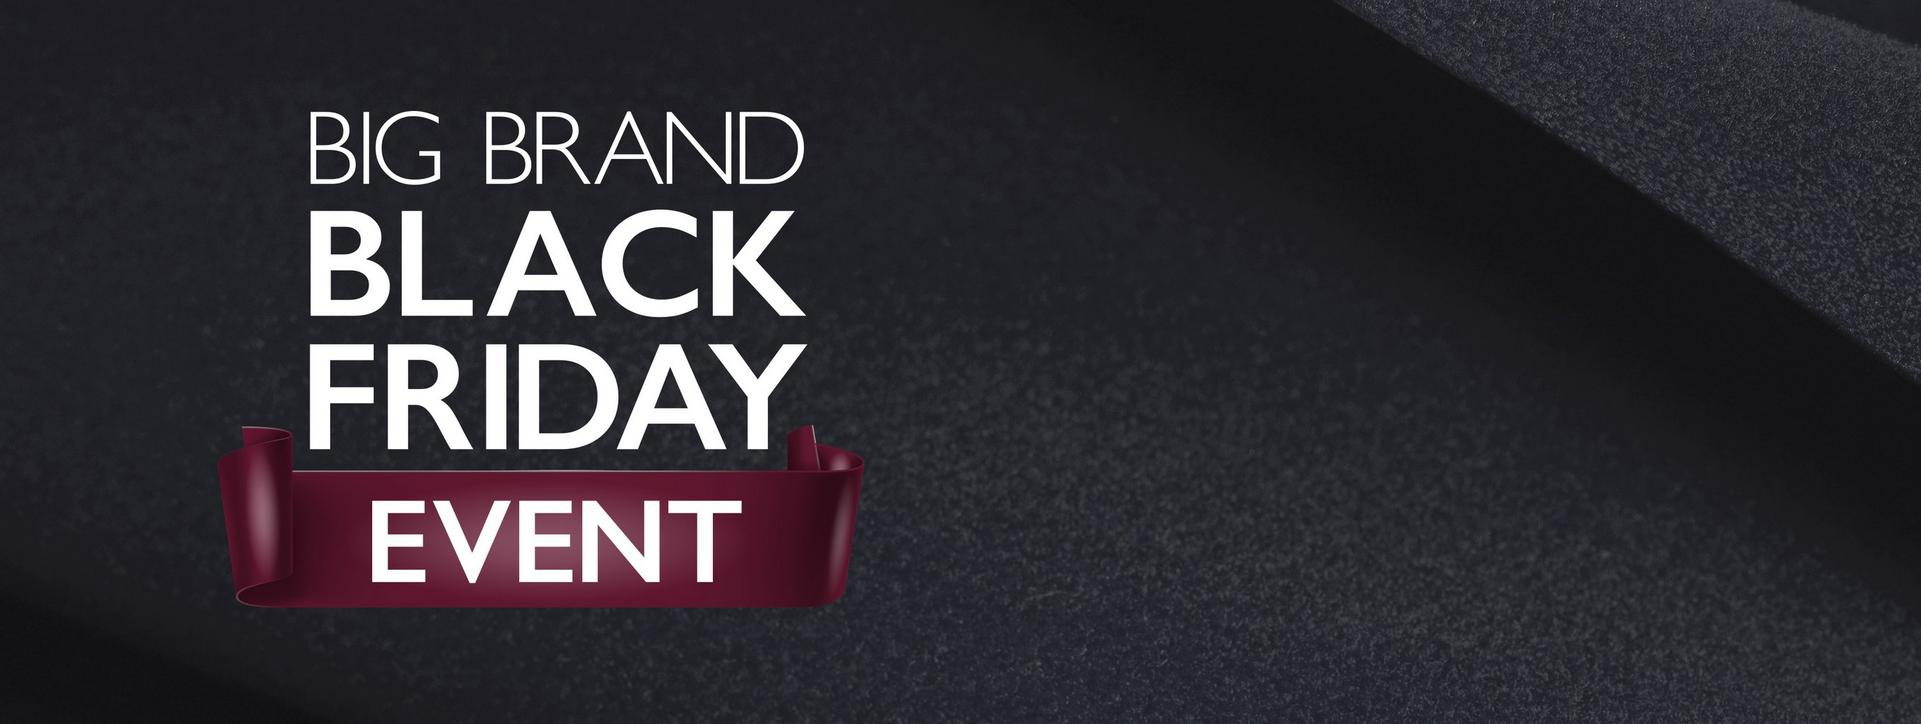 Big Brand Black Friday Event